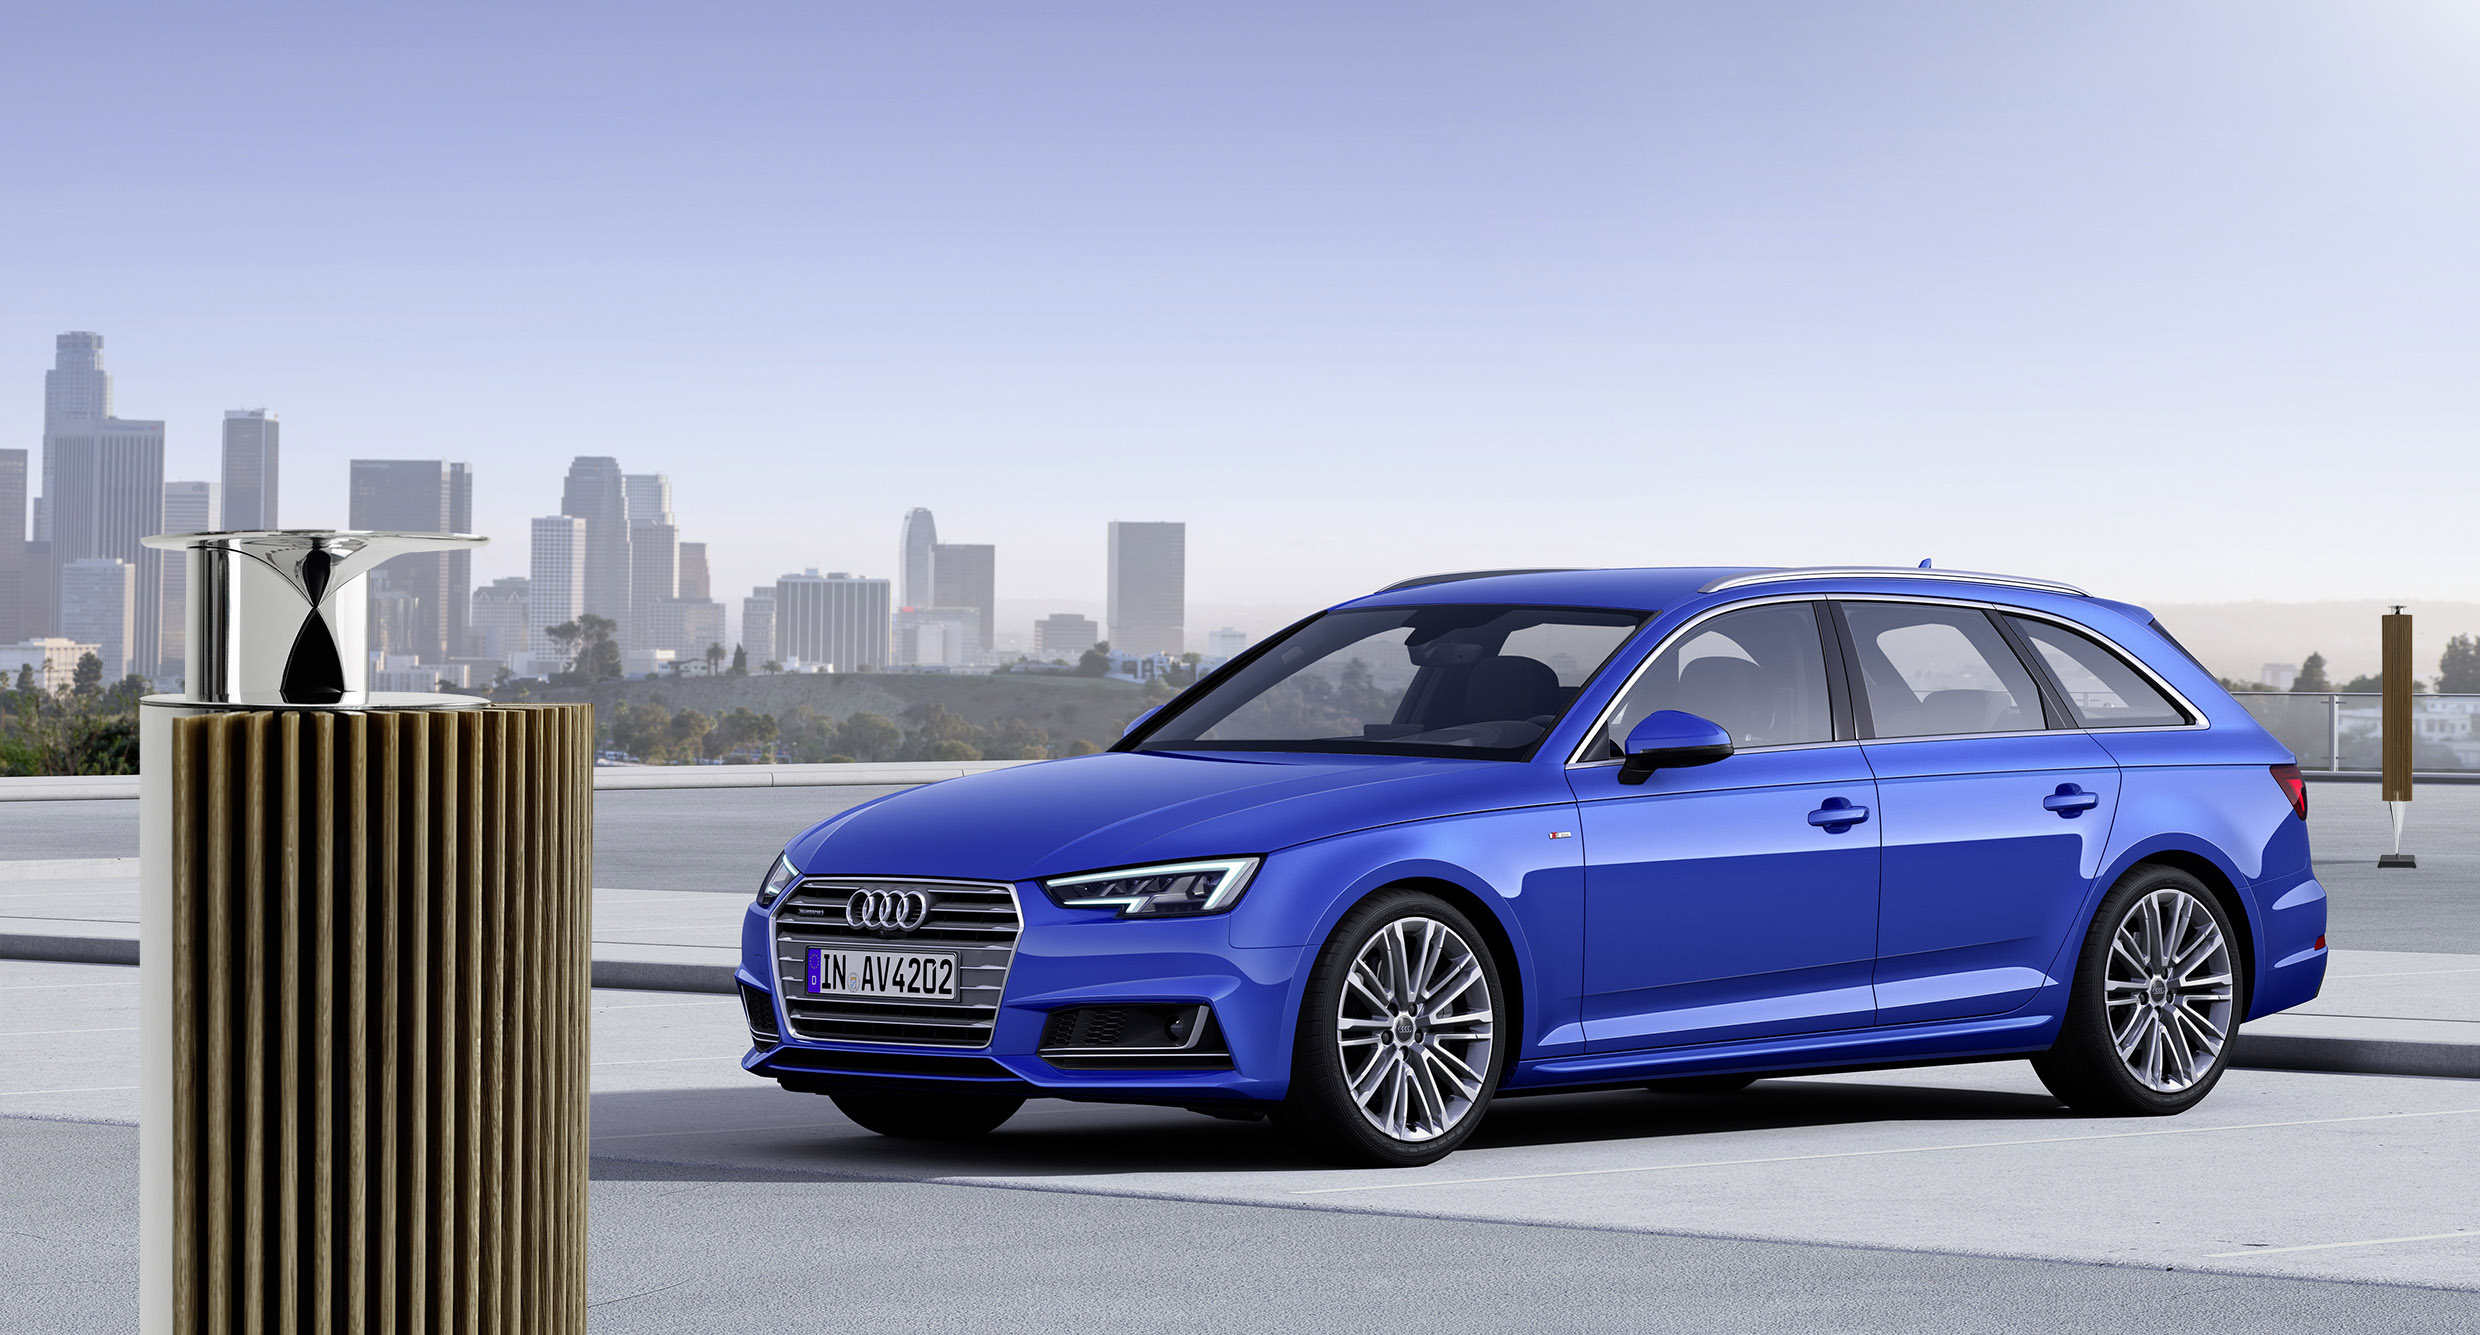 2016 audi a4 saloon and avant will wear the bang olufsen 3d sound system 97515_1 2016 audi a4 saloon and avant will wear a bang & olufsen 3d sound  at soozxer.org